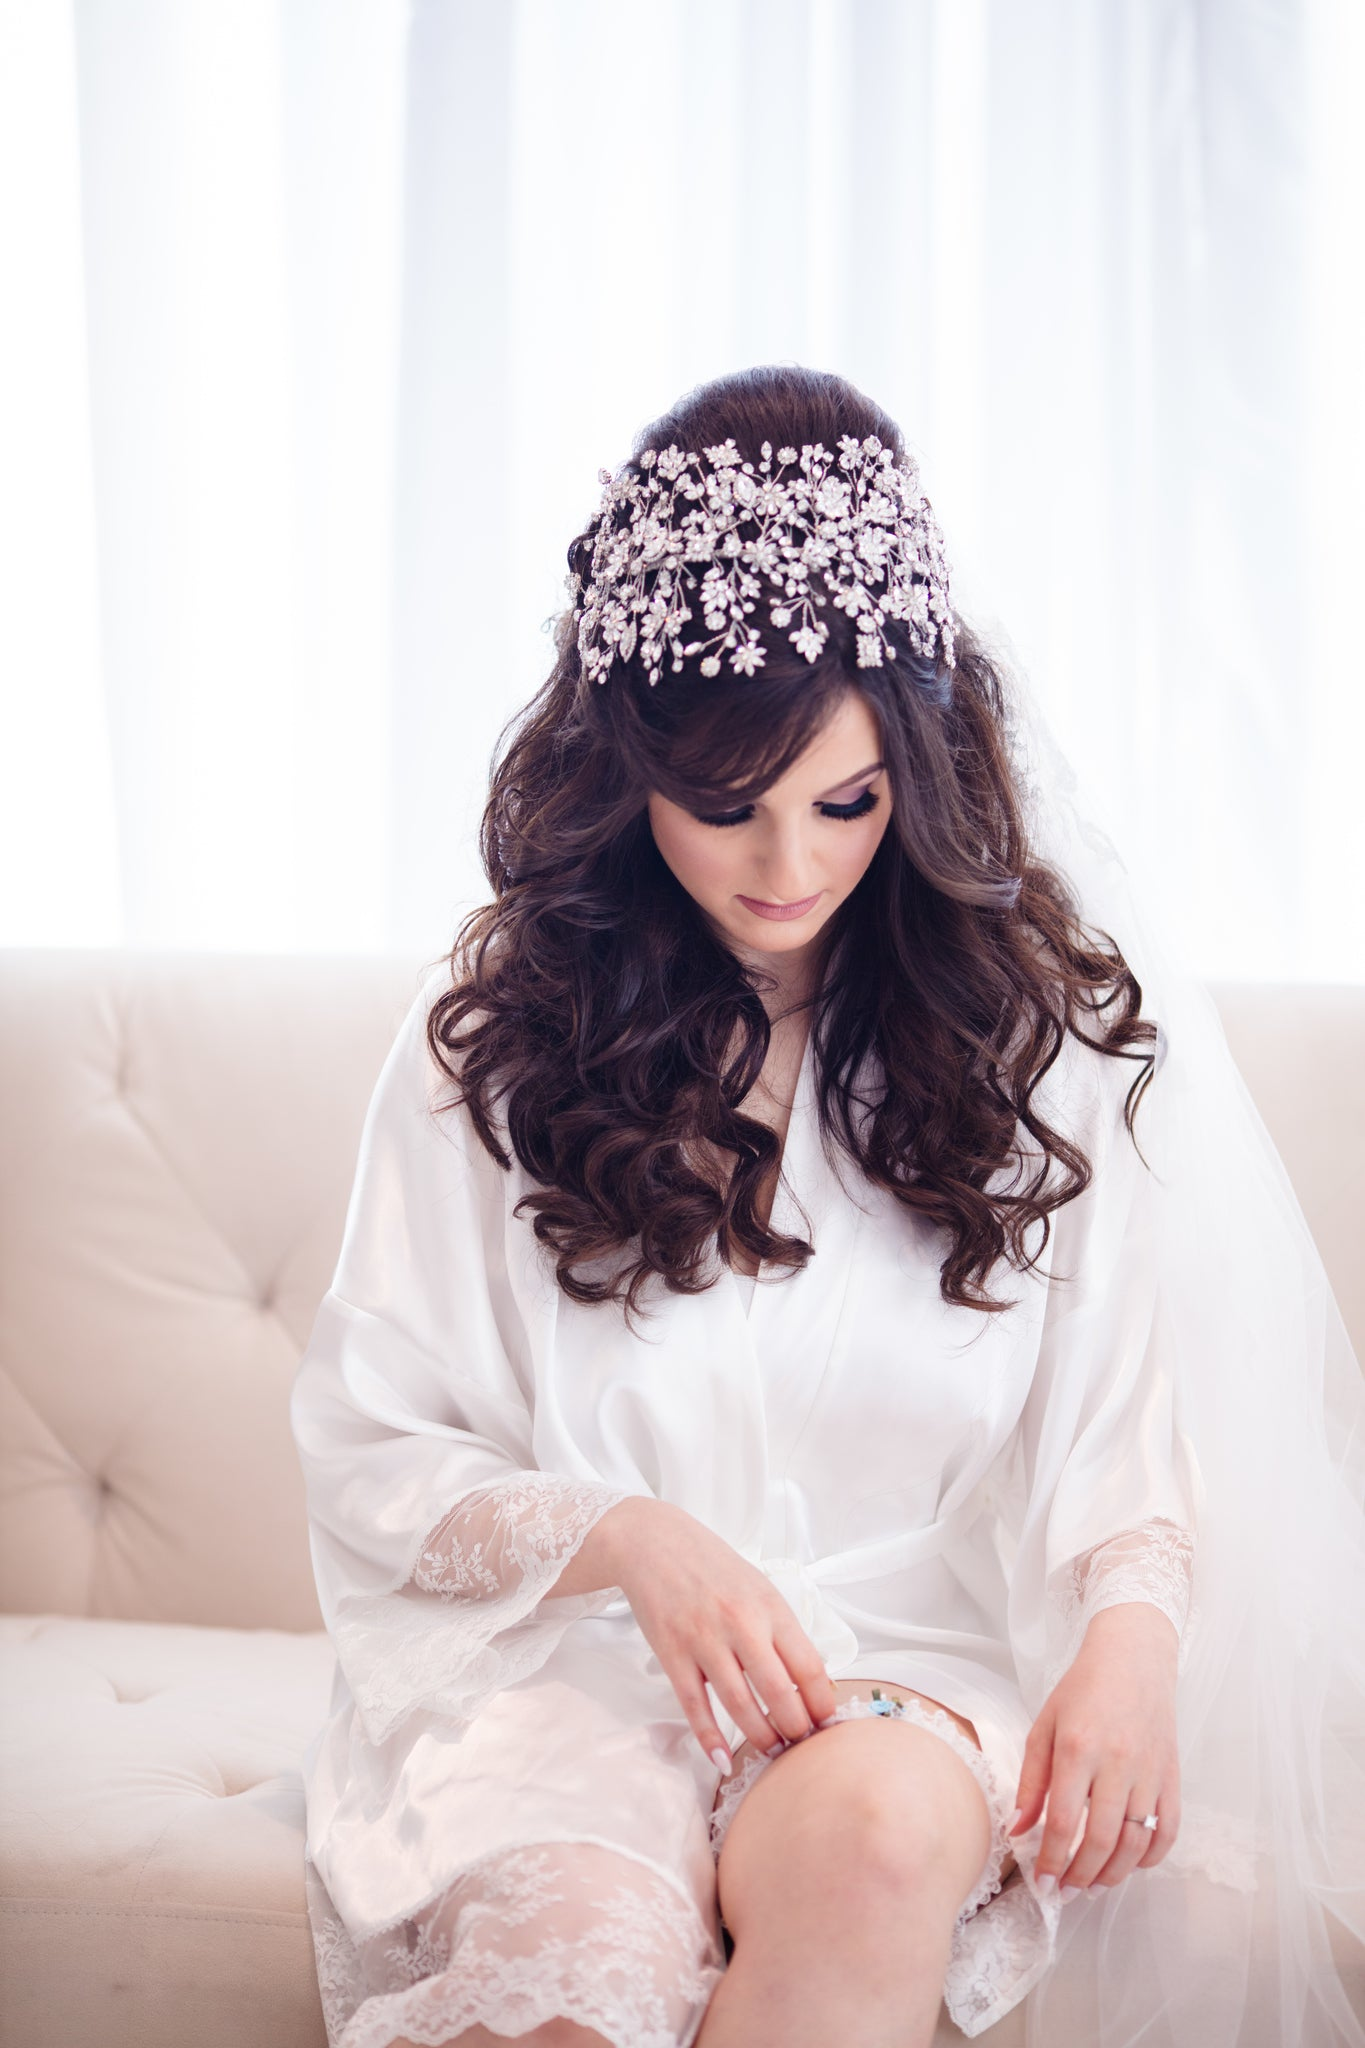 Bridal - Hair - Photography - Bride - Wedding - Jewelry - Headpiece - Crown - Tiara